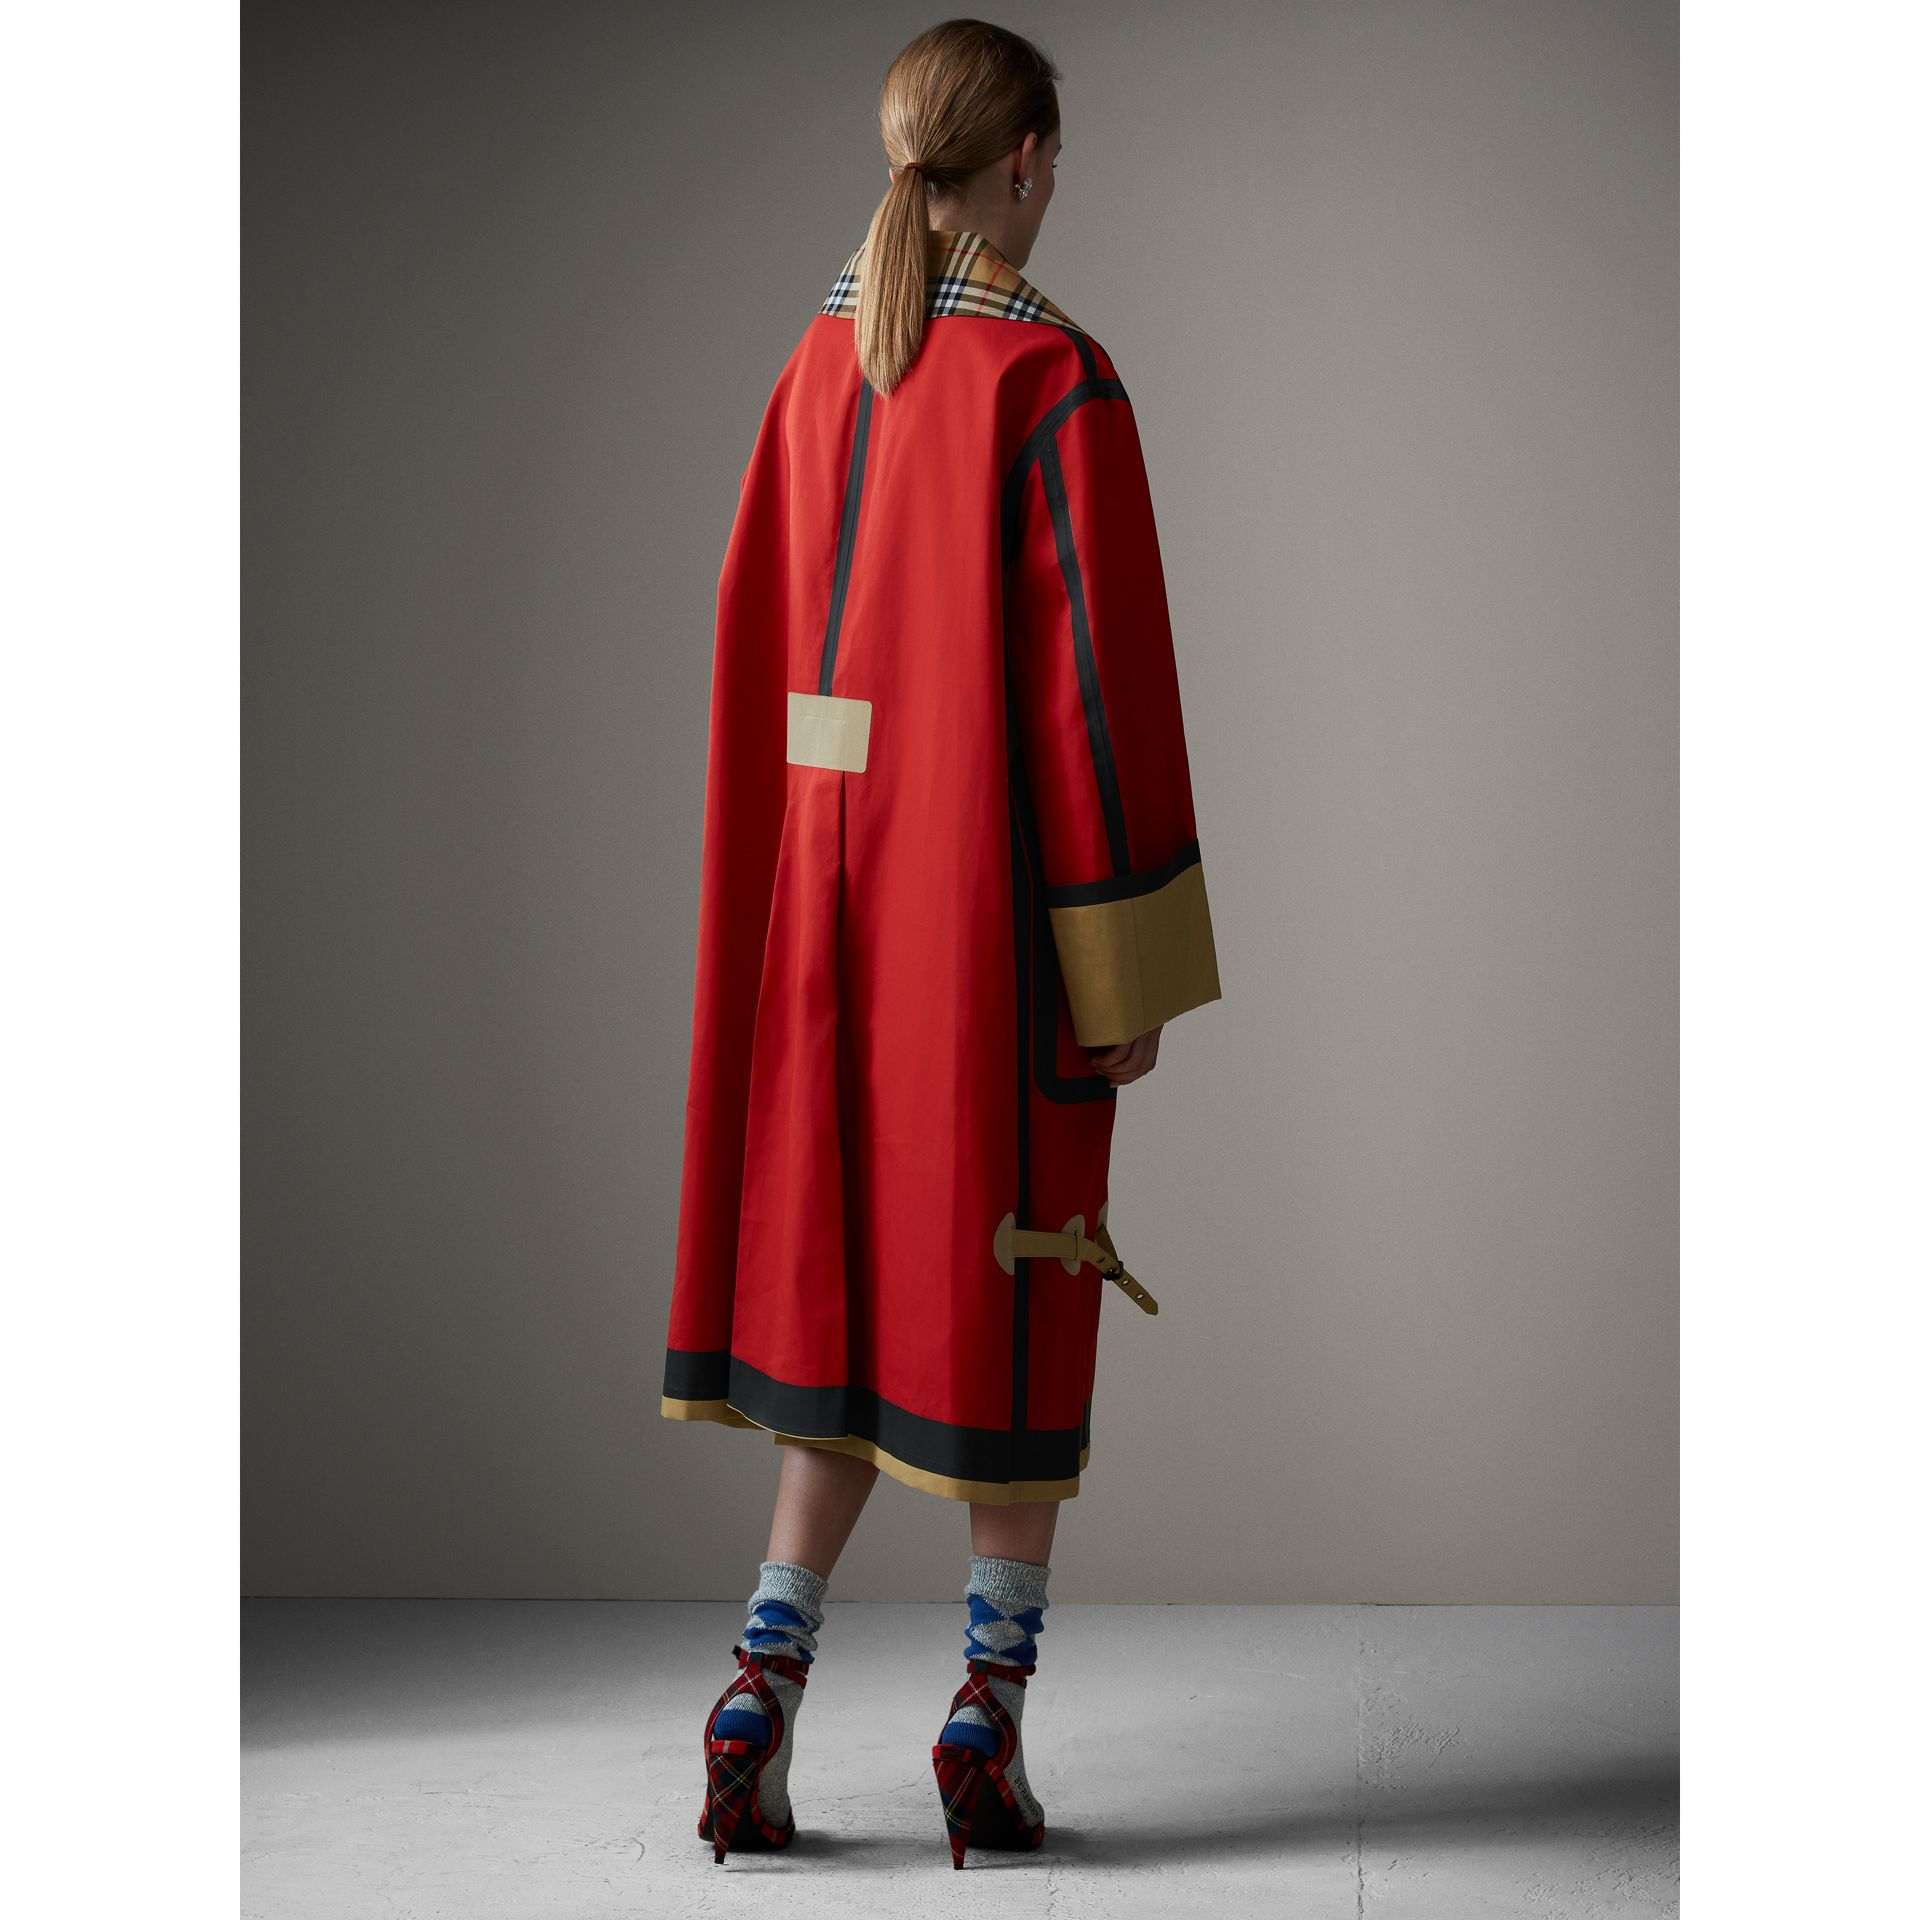 Bonded Cotton Oversized Seam-sealed Car Coat in Red/beige - Women | Burberry Singapore - gallery image 2